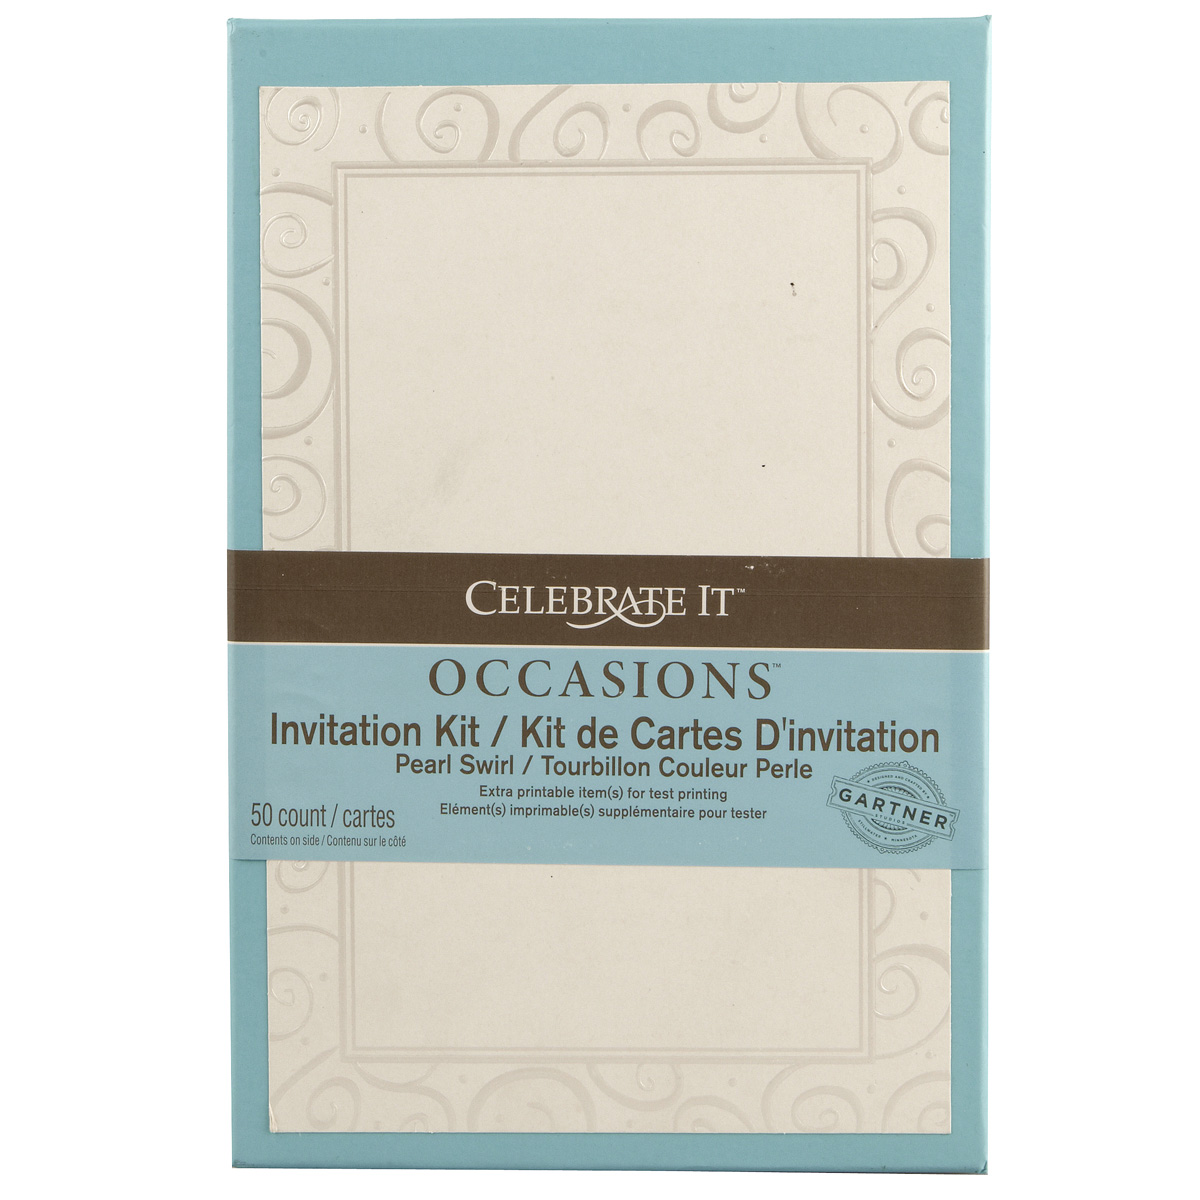 Celebrate It Occasions Invitation Kit, Pearl Swirl Heart Border